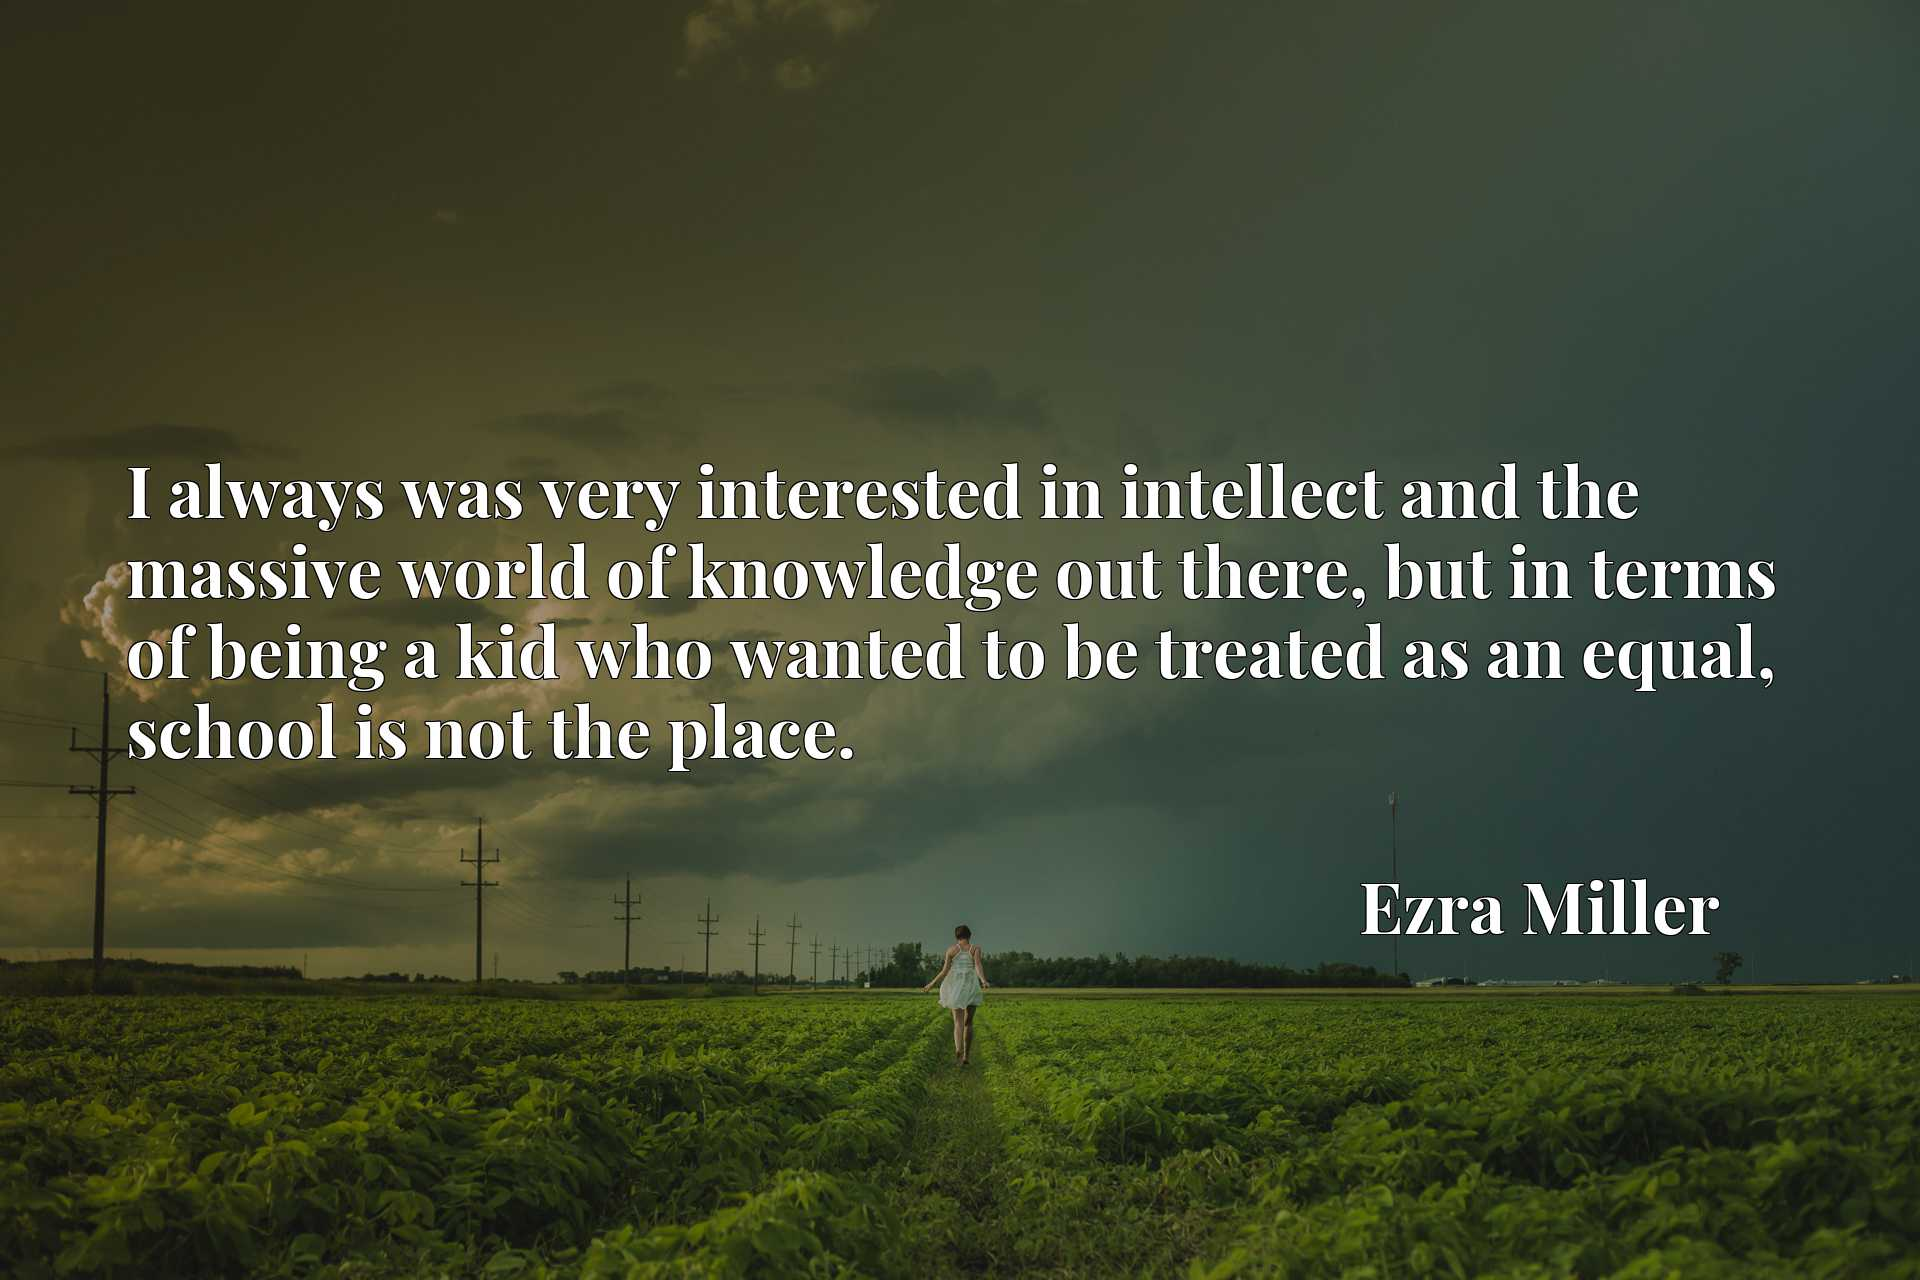 Quote Picture :I always was very interested in intellect and the massive world of knowledge out there, but in terms of being a kid who wanted to be treated as an equal, school is not the place.